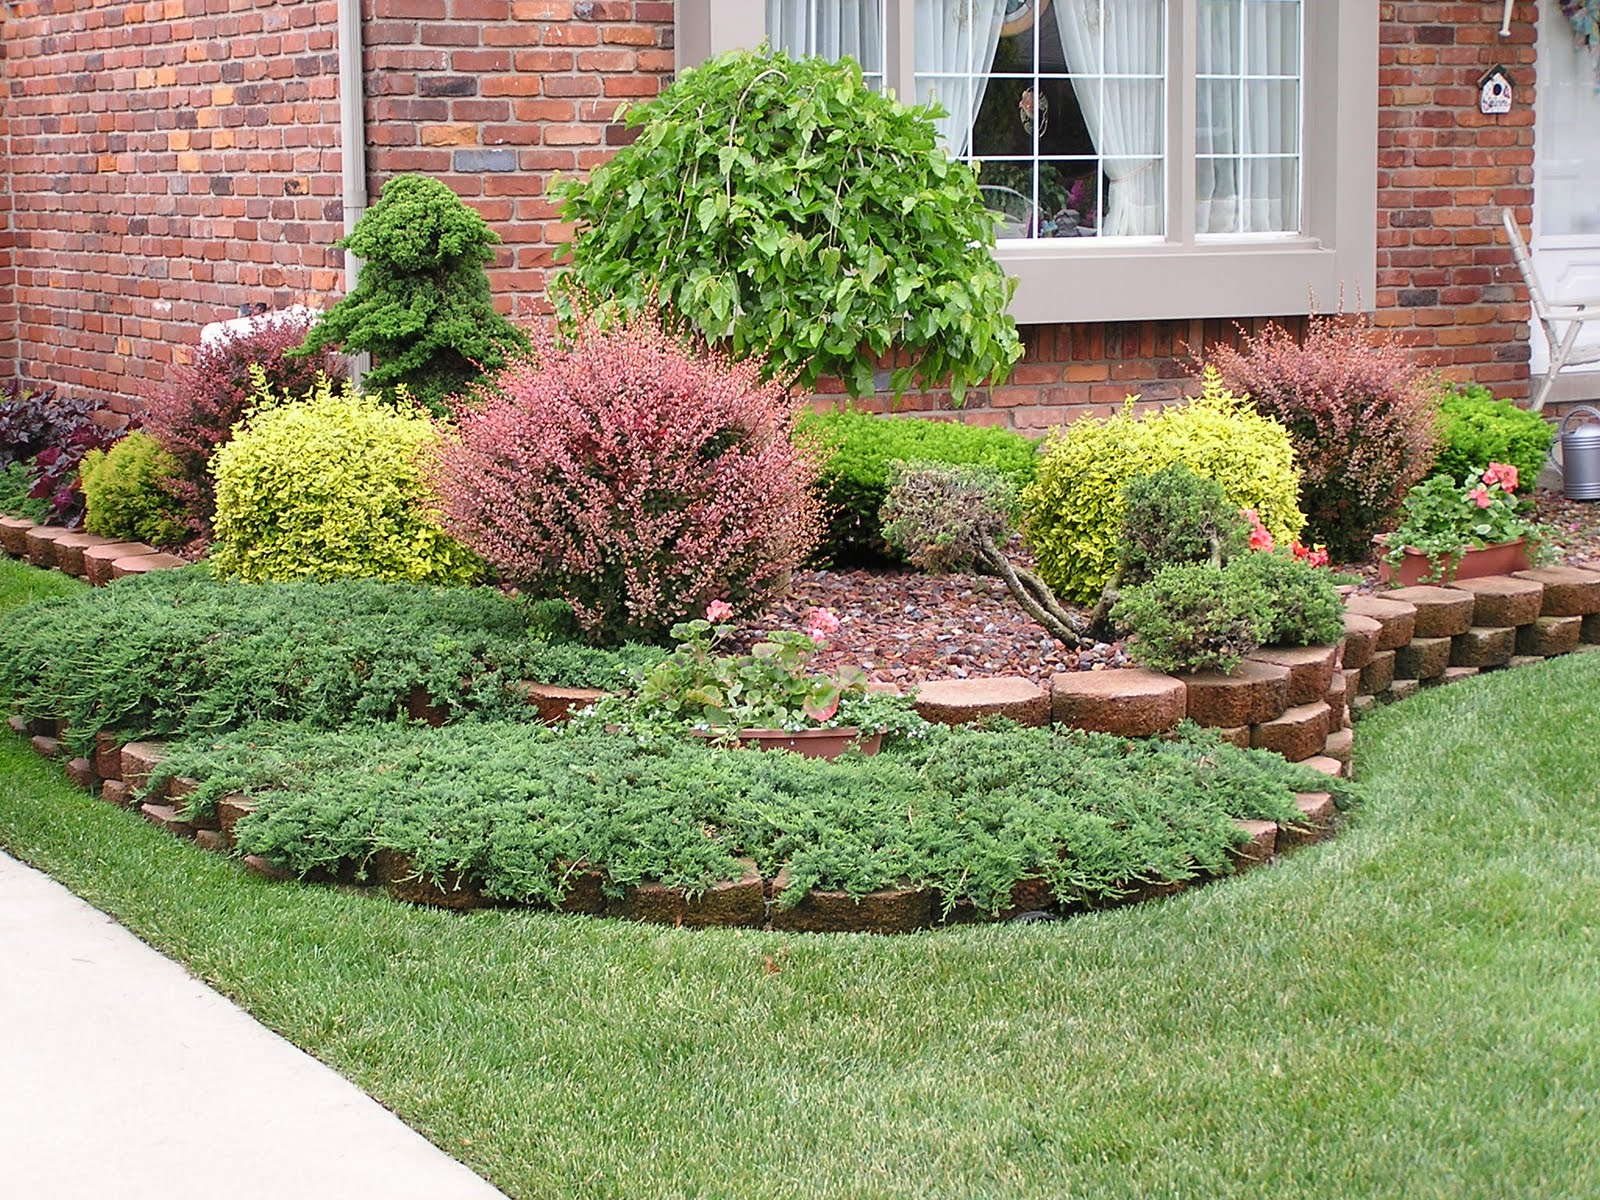 D i y d e s i g n curb appeal part 2 the landscaping for Low bushes for landscaping